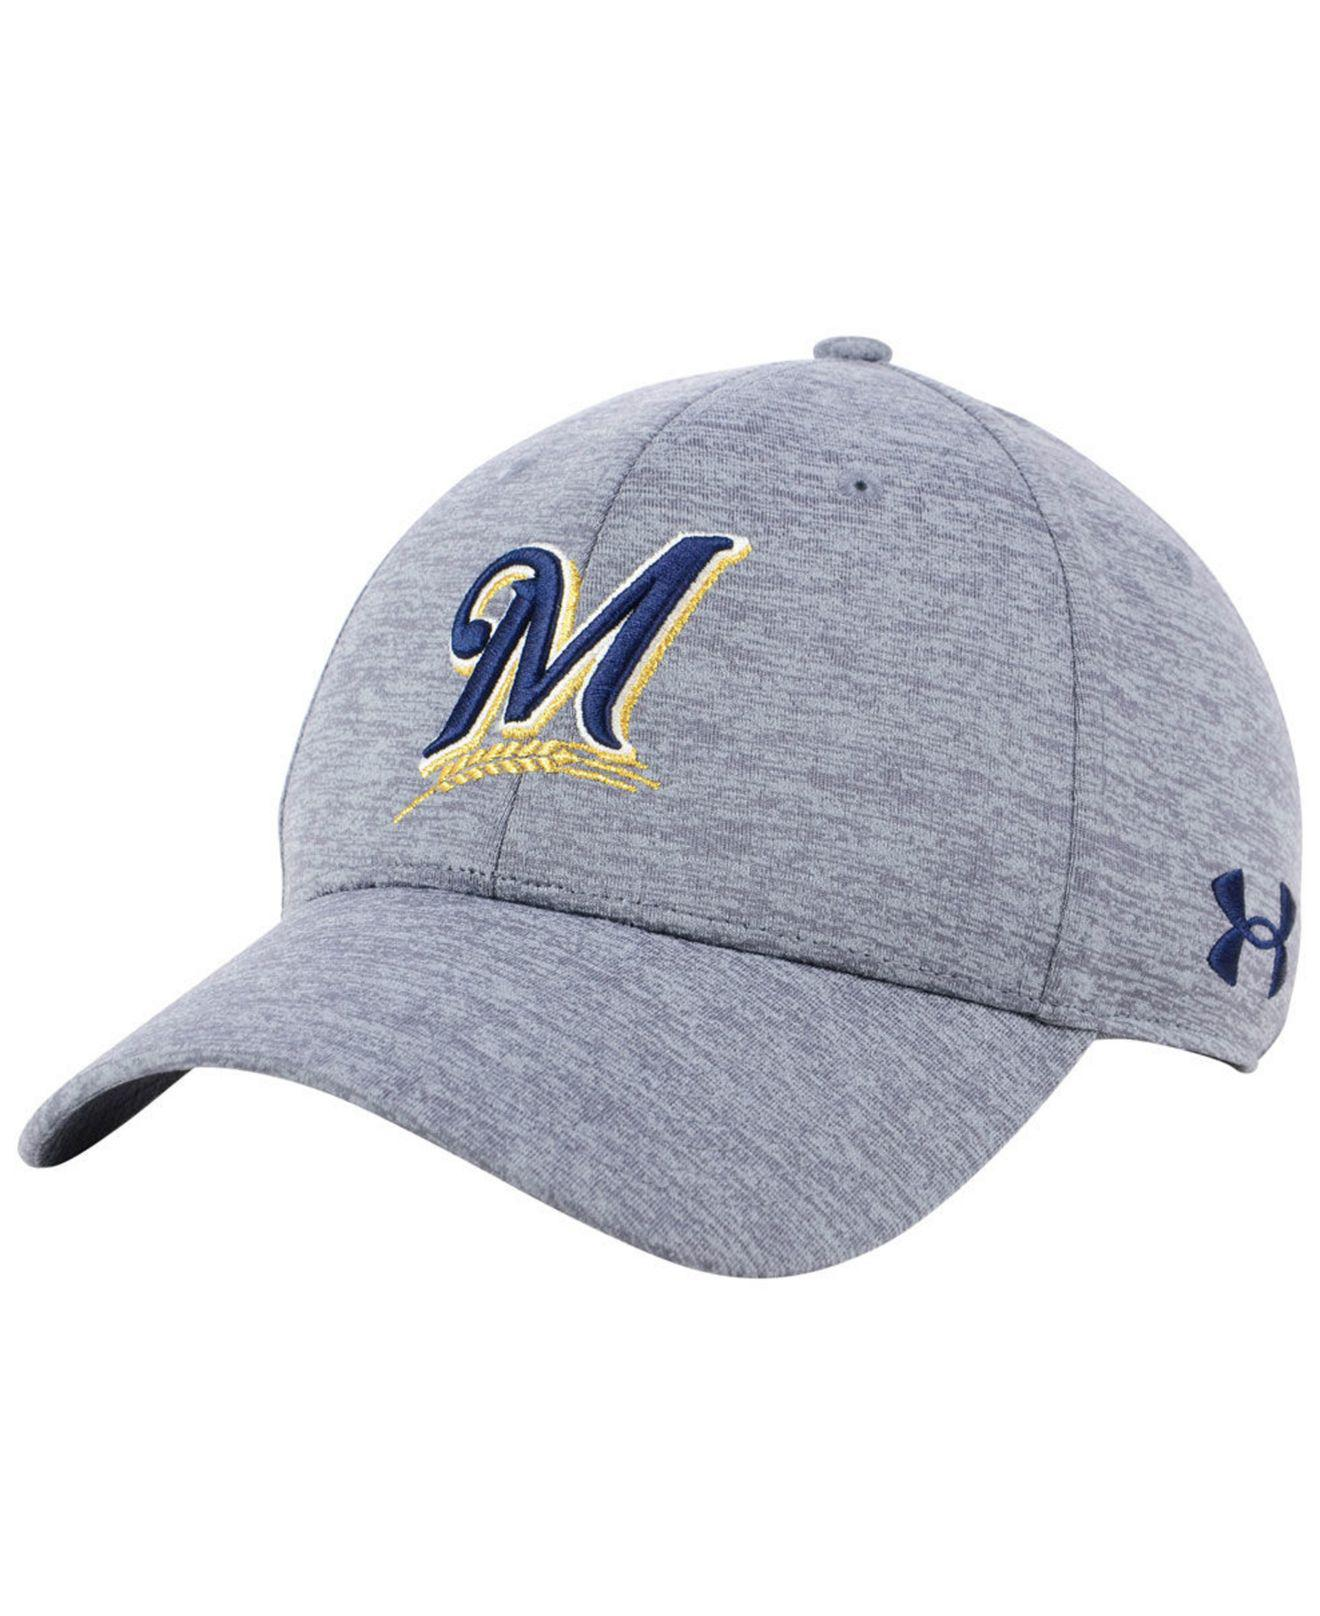 4f2f218024596 Lyst - Under Armour Milwaukee Brewers Twist Closer Cap in Gray for Men